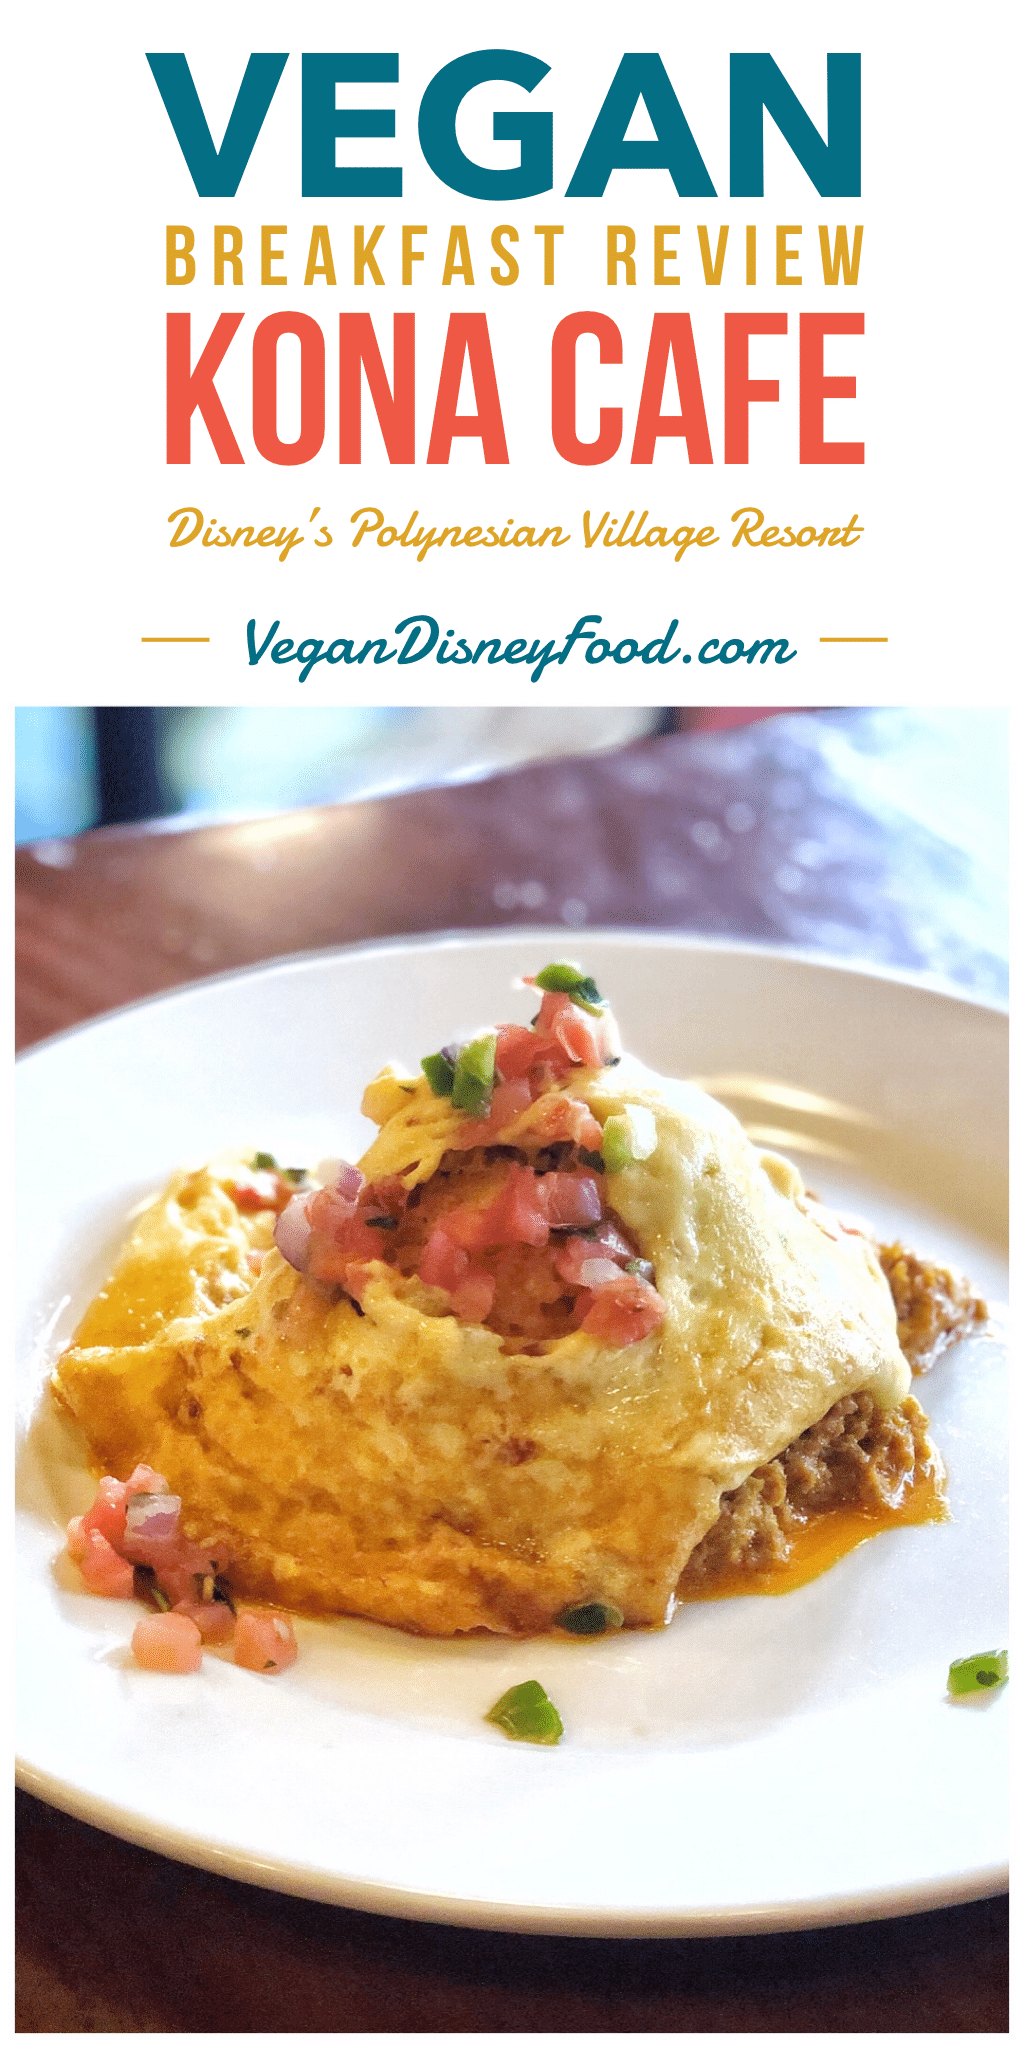 Vegan Breakfast Review at Kona Cafe in Disney's Polynesian Village Resort at Walt Disney World